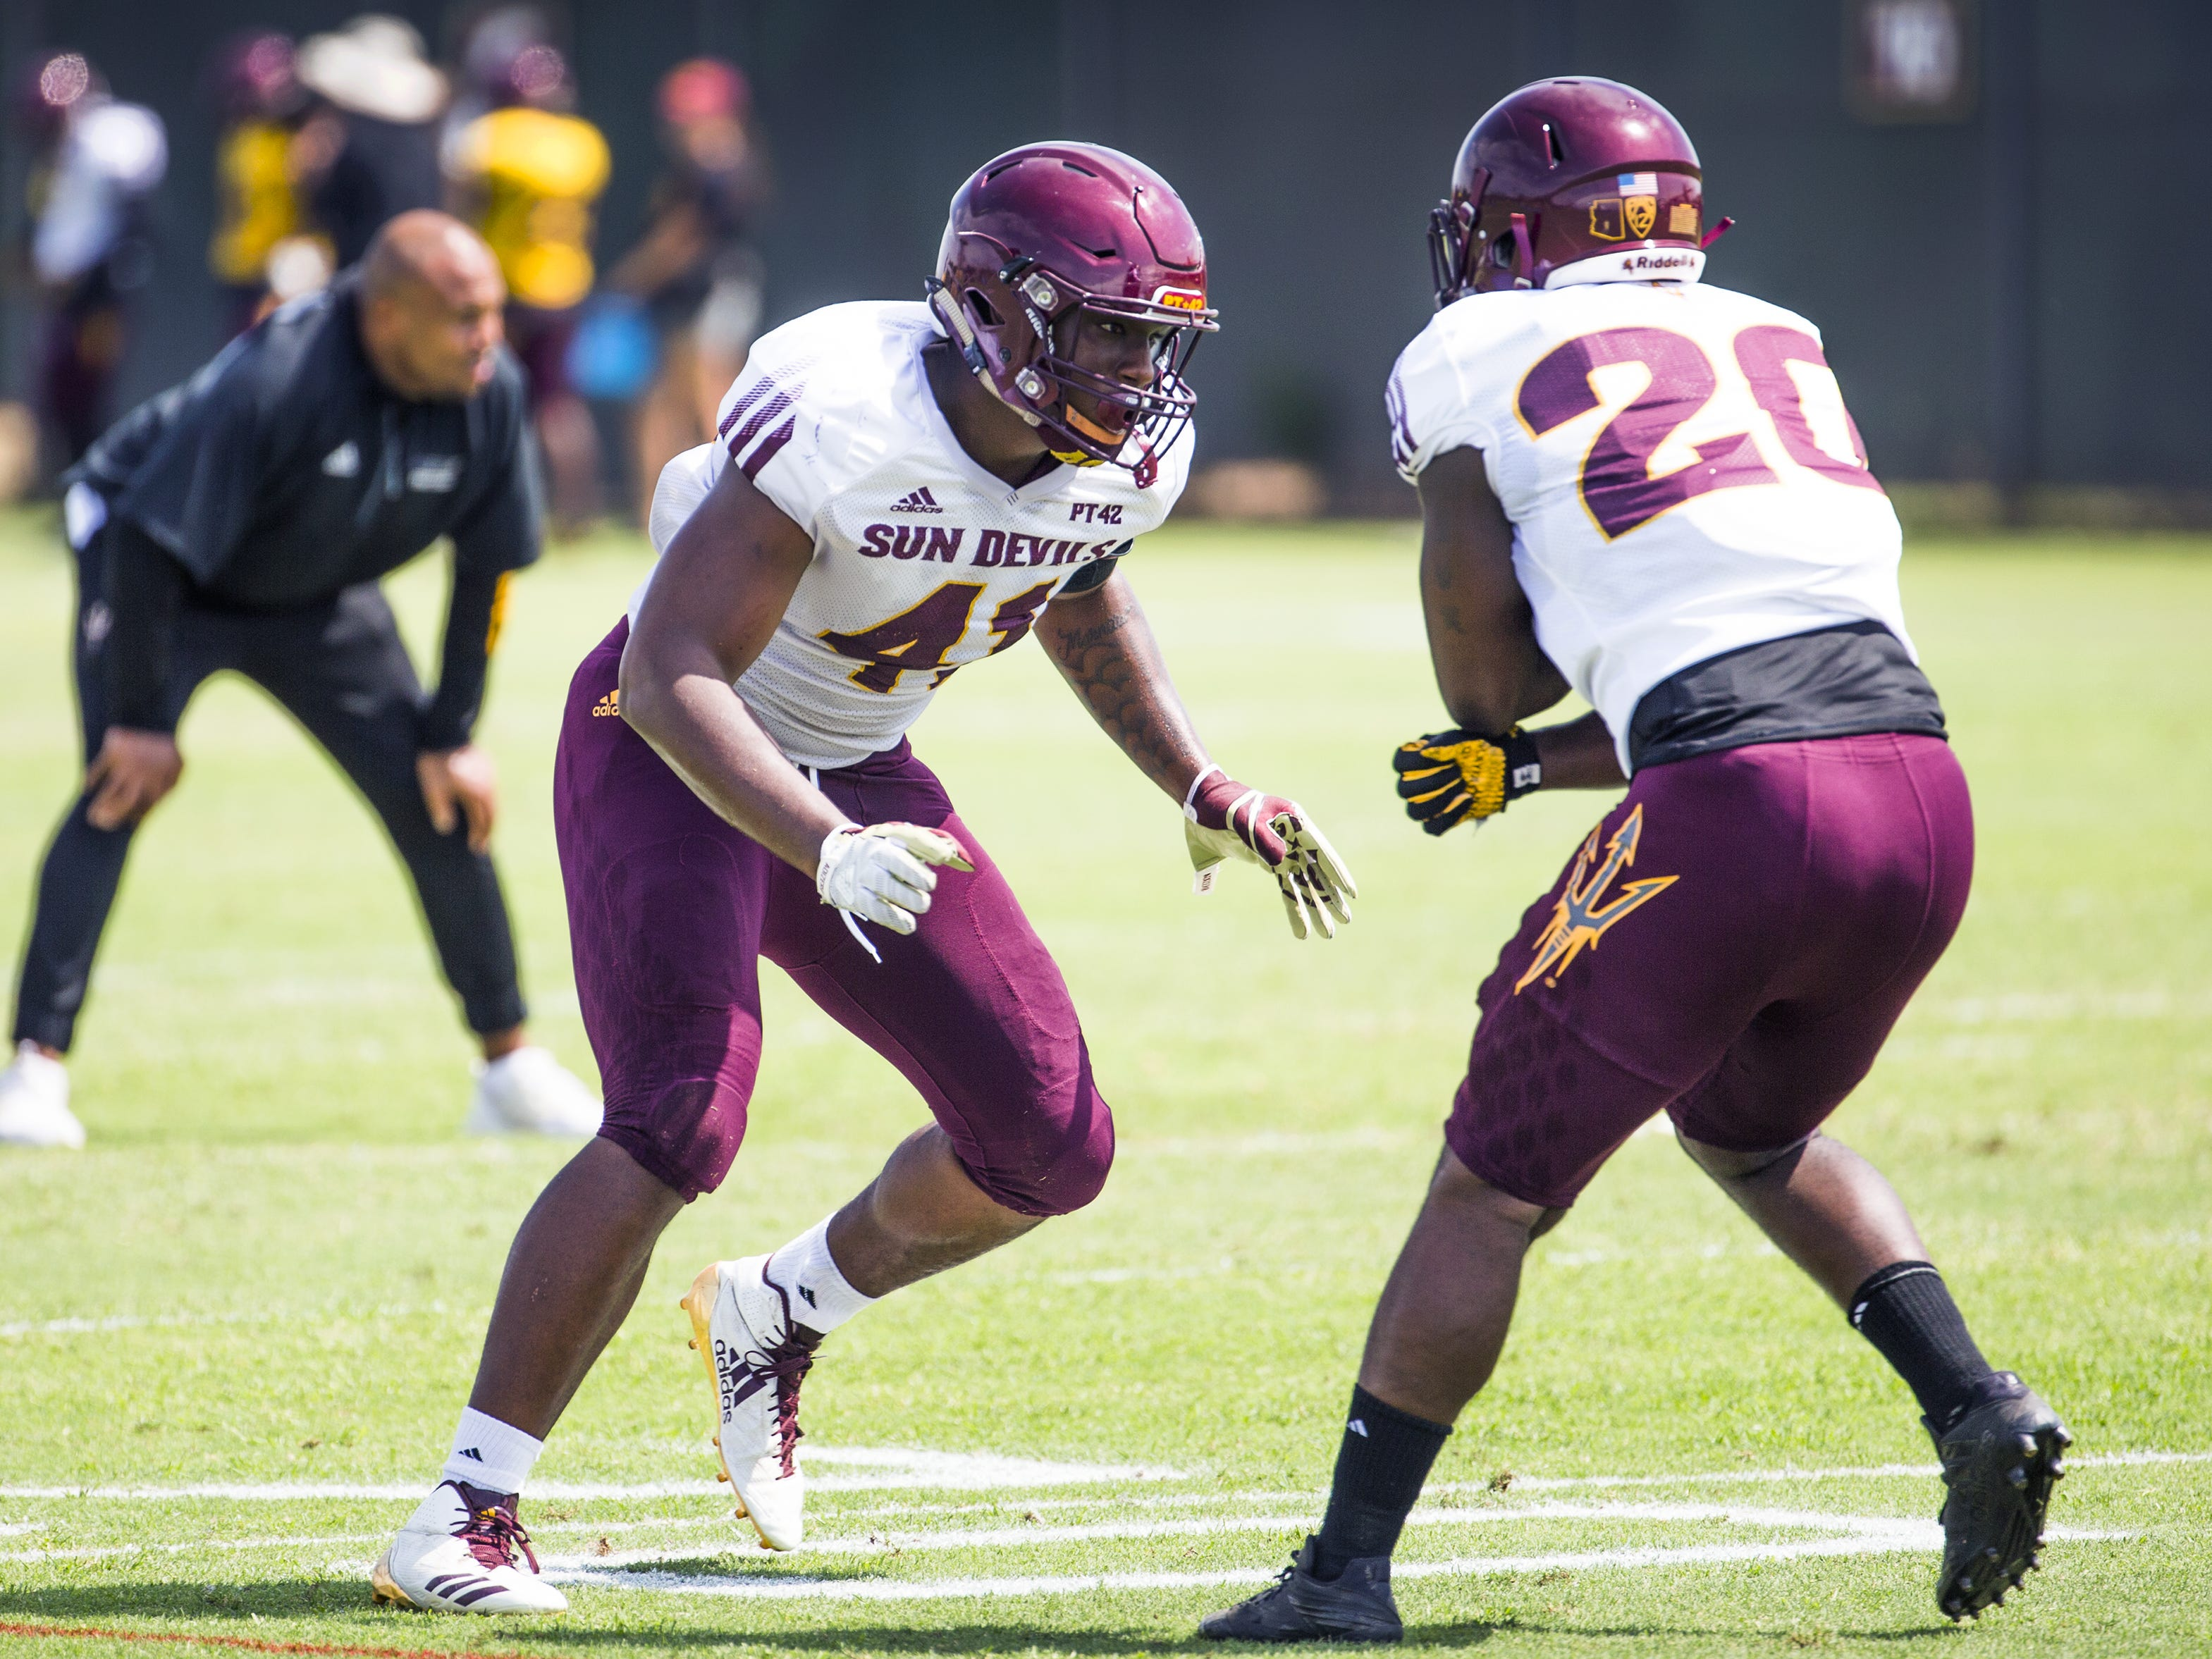 Arizona State University dlinebacker Tyler Johnson, left, rushes linebacker Kaylan Kearse-Thomas, right, at practice in Tempe, Tuesday, August 21, 2018.